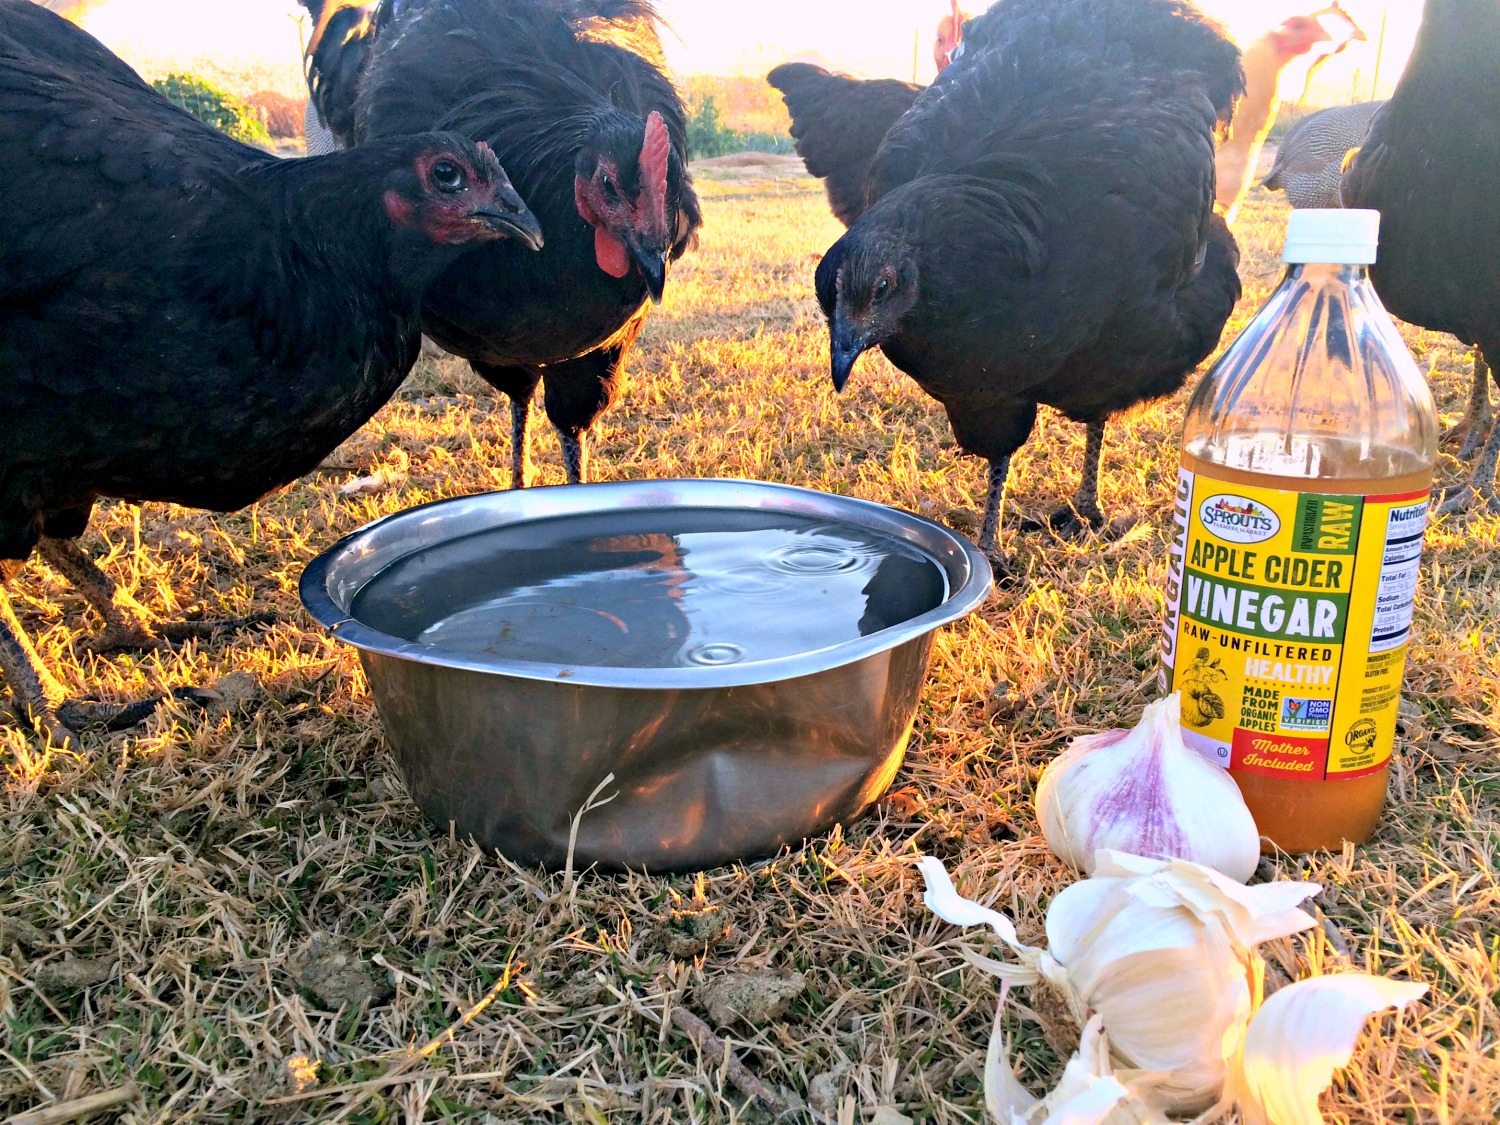 Improve your backyard chicken health, by feeding your hens garlic & apple cider vinegar. It's great for their health. And I'll show you how easy it is to start feeding it to your hens today.